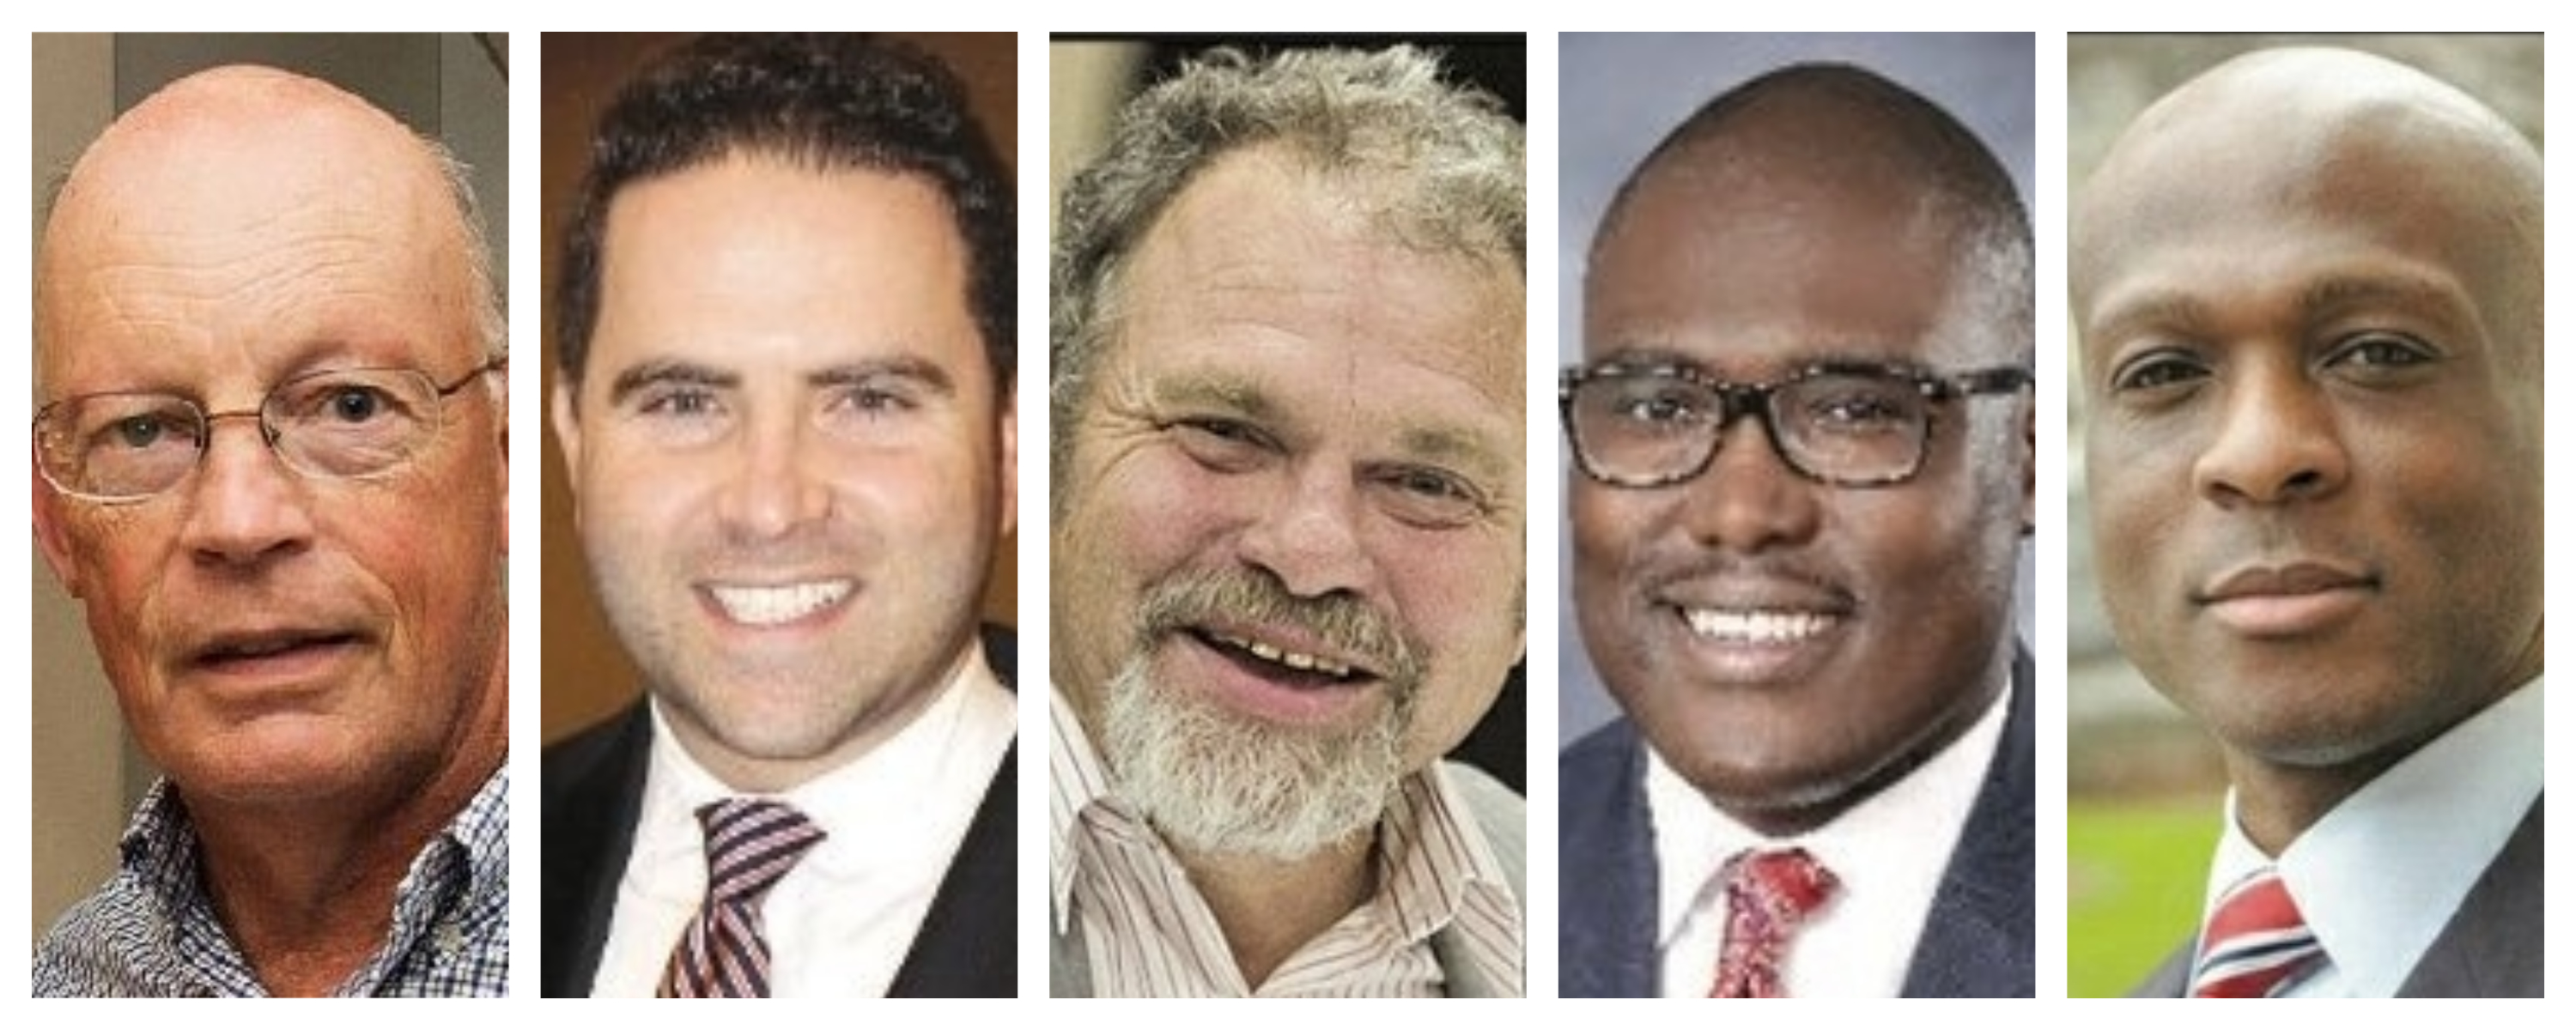 About $1M given in race for Little Rock mayor